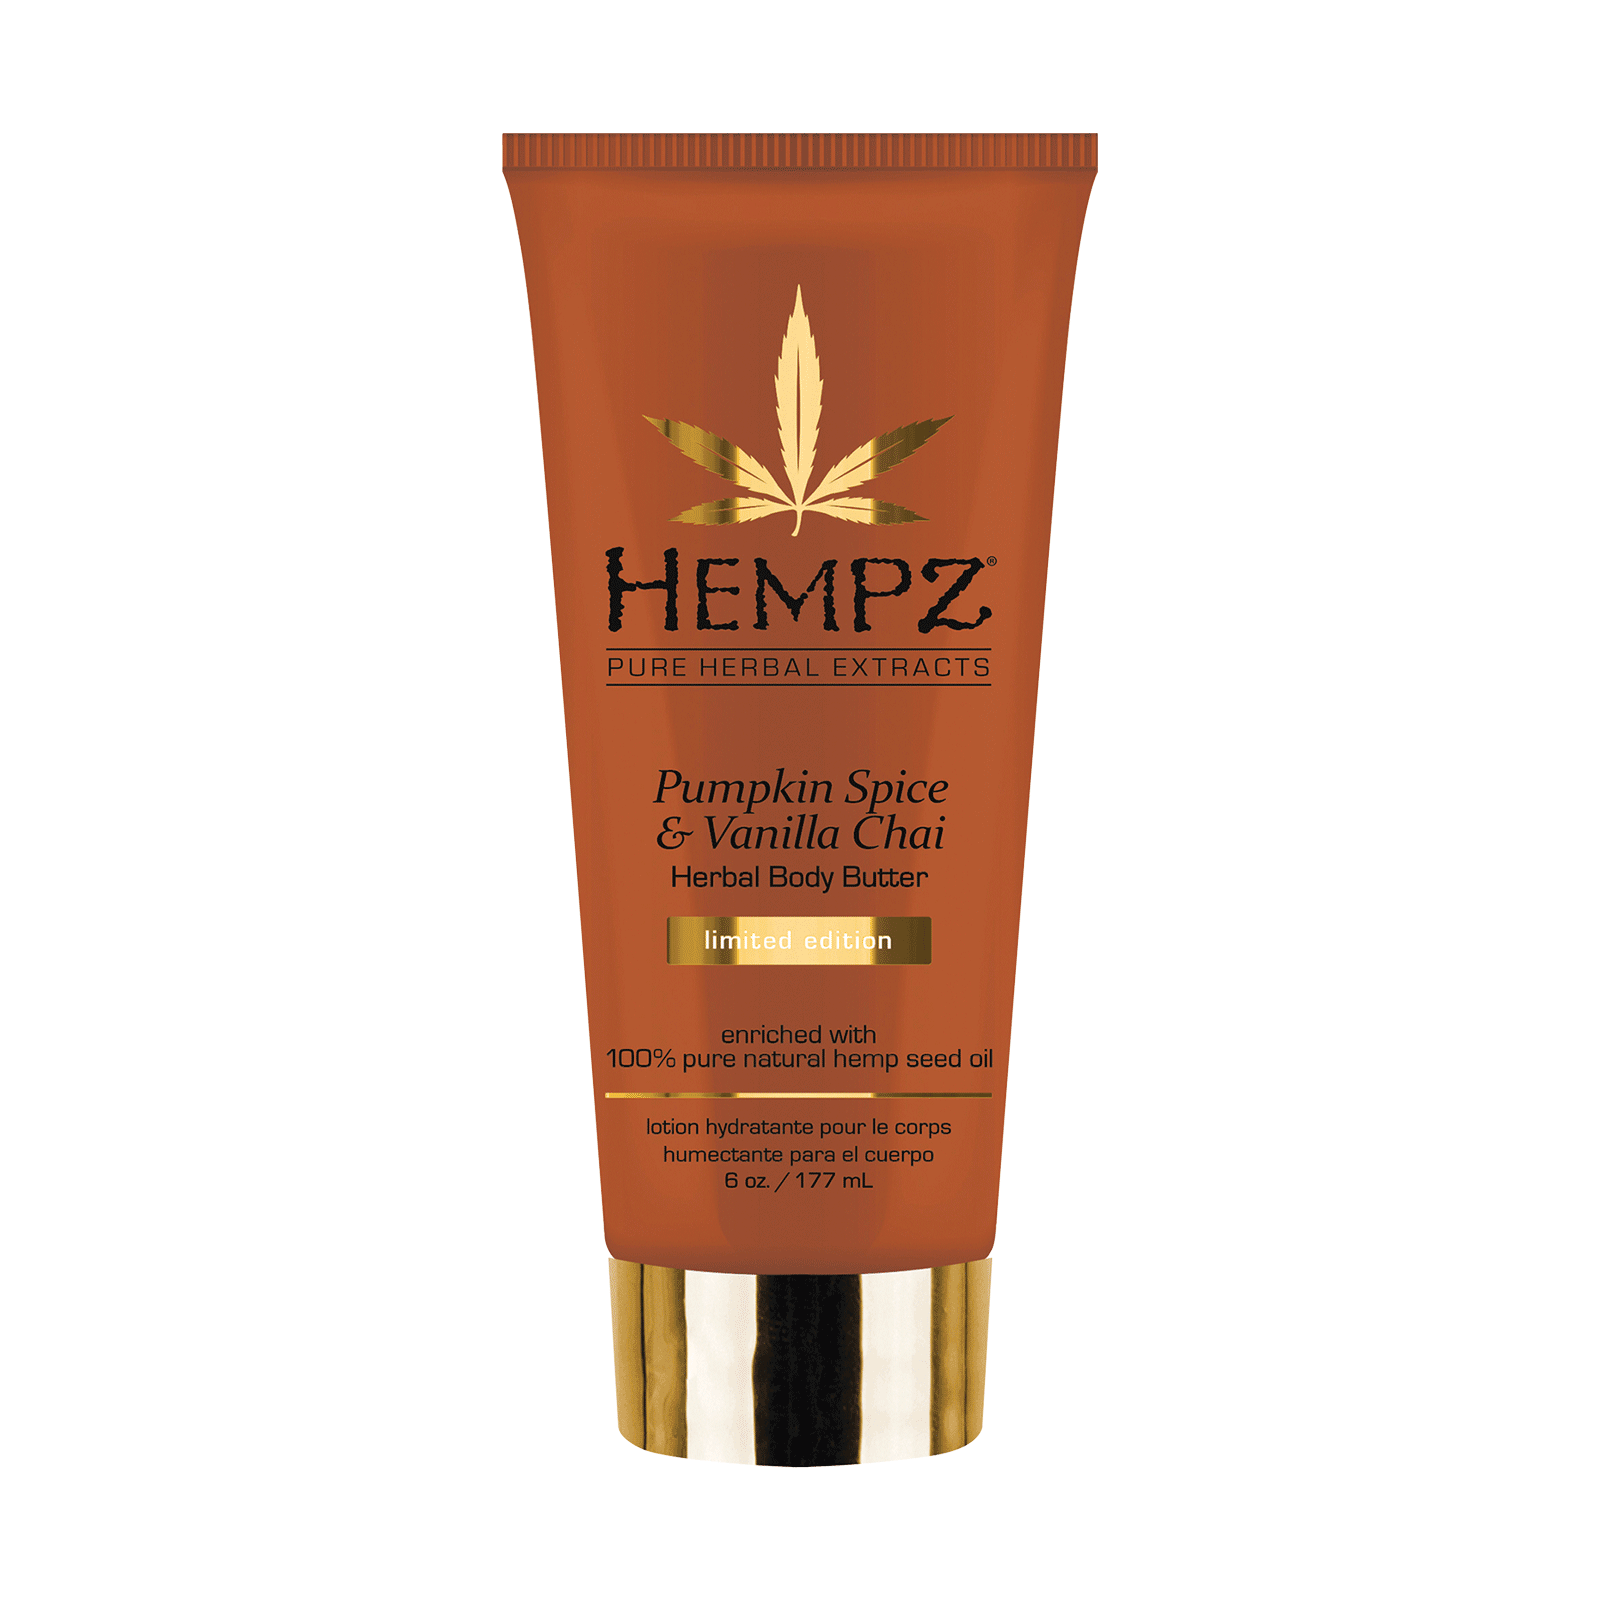 Hempz Pumpkin Spice & Vanilla Chai Herbal Body Butter 6 fl.oz